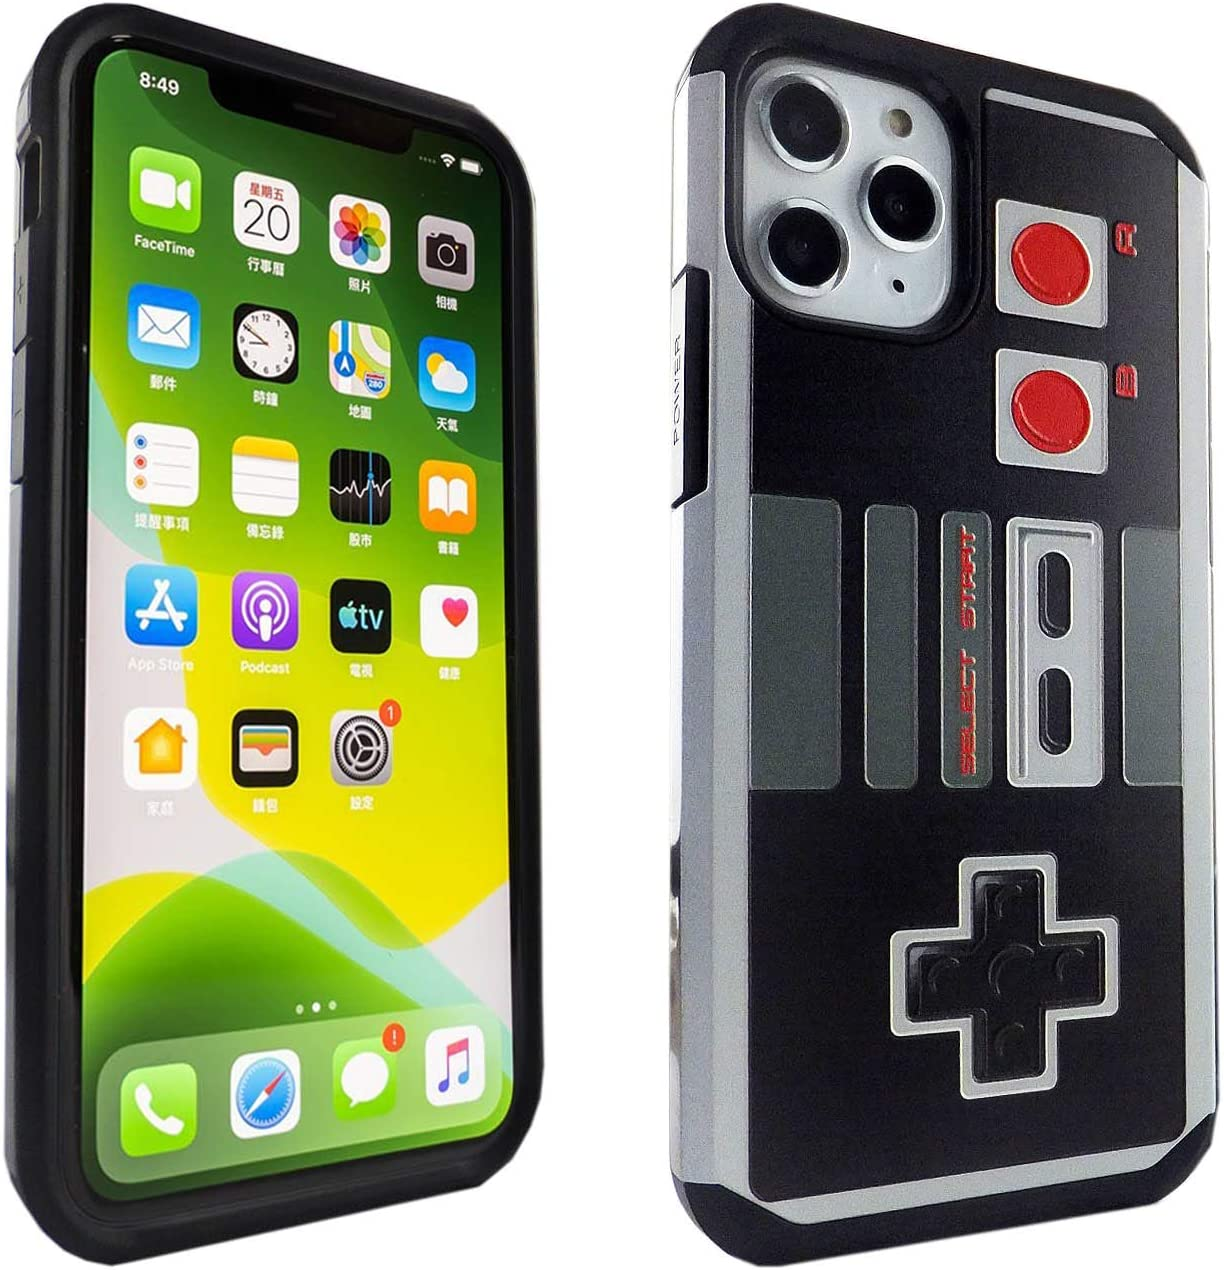 iPhone 11 Pro Case Game Controller, IMAGITOUCH 2-Piece Style Armor Case with Flexible Shock Absorption Case & Retro Game Controller Design Cover Hybrid for iPhone 11 Pro (5.8 inch)